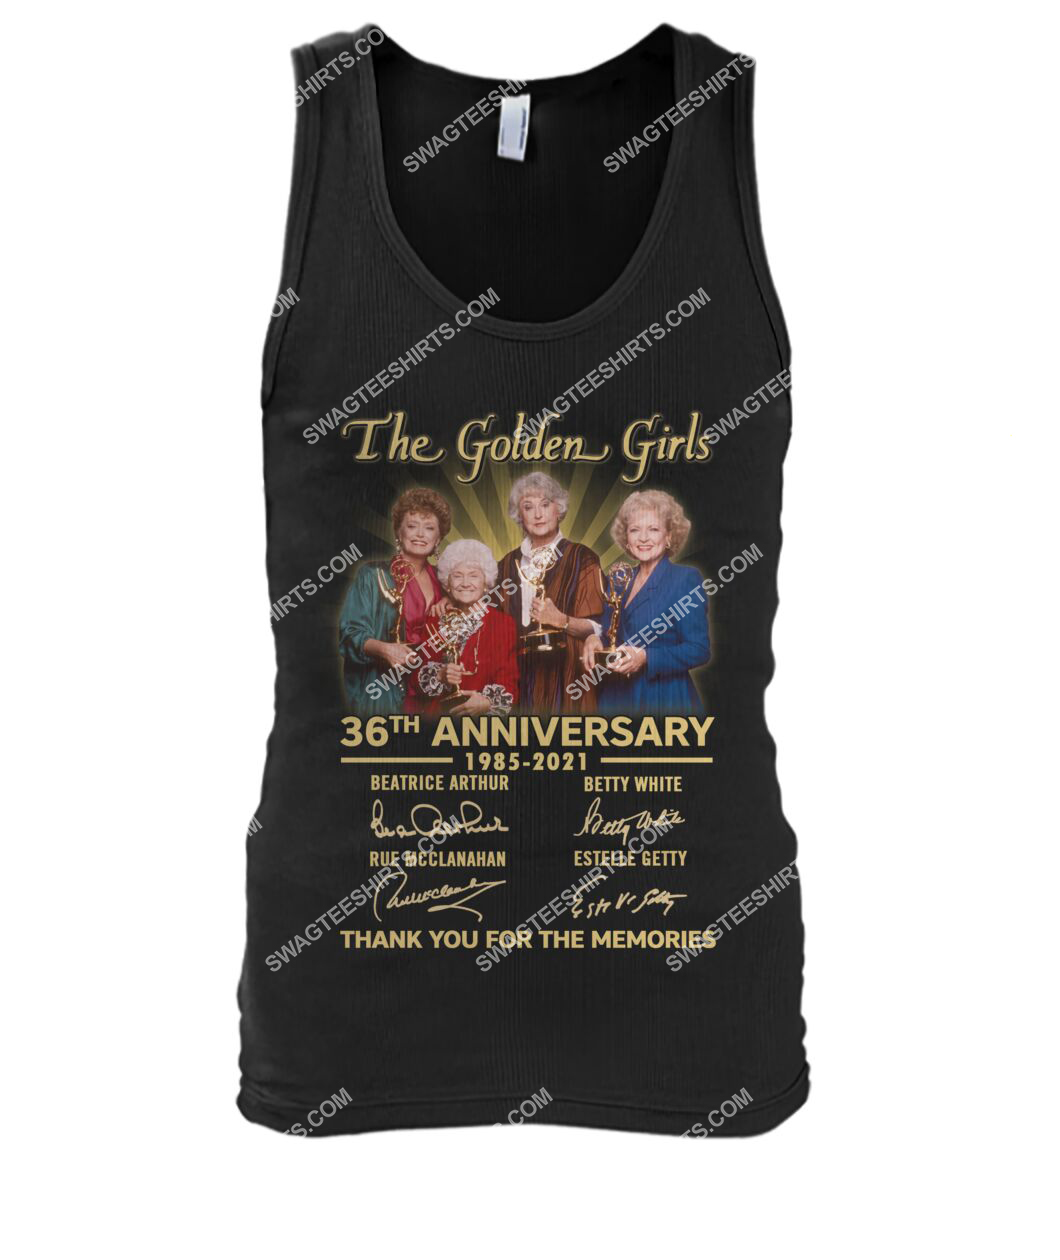 the golden girl 36th anniversary 1985 2021 thank you for the memories signatures tank top 1